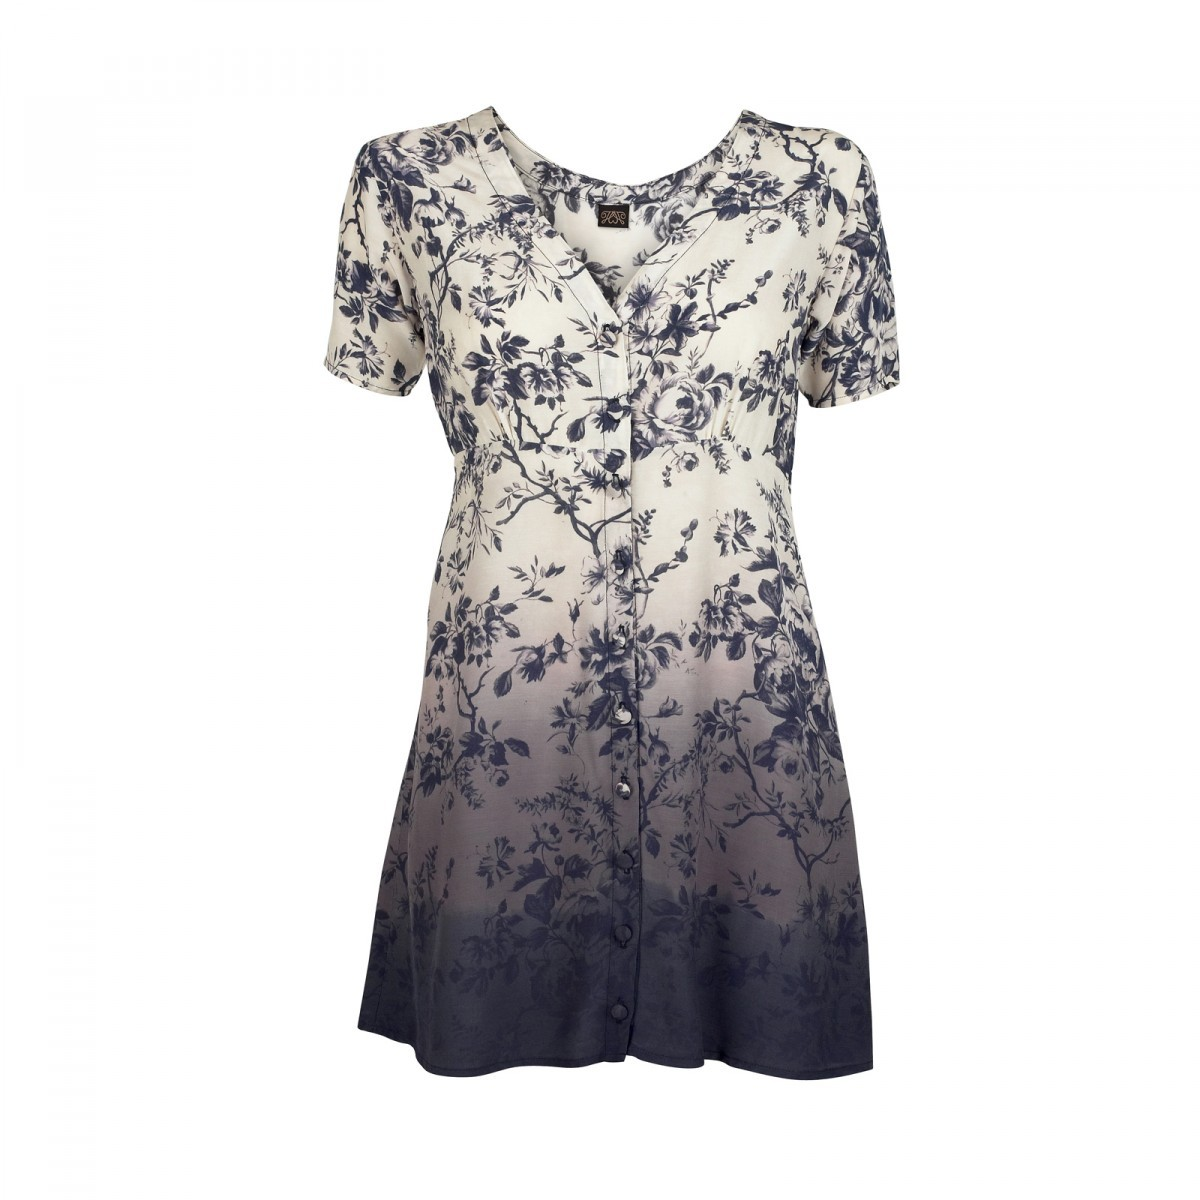 Dalston Rose Teadress available from @HouseofHackney